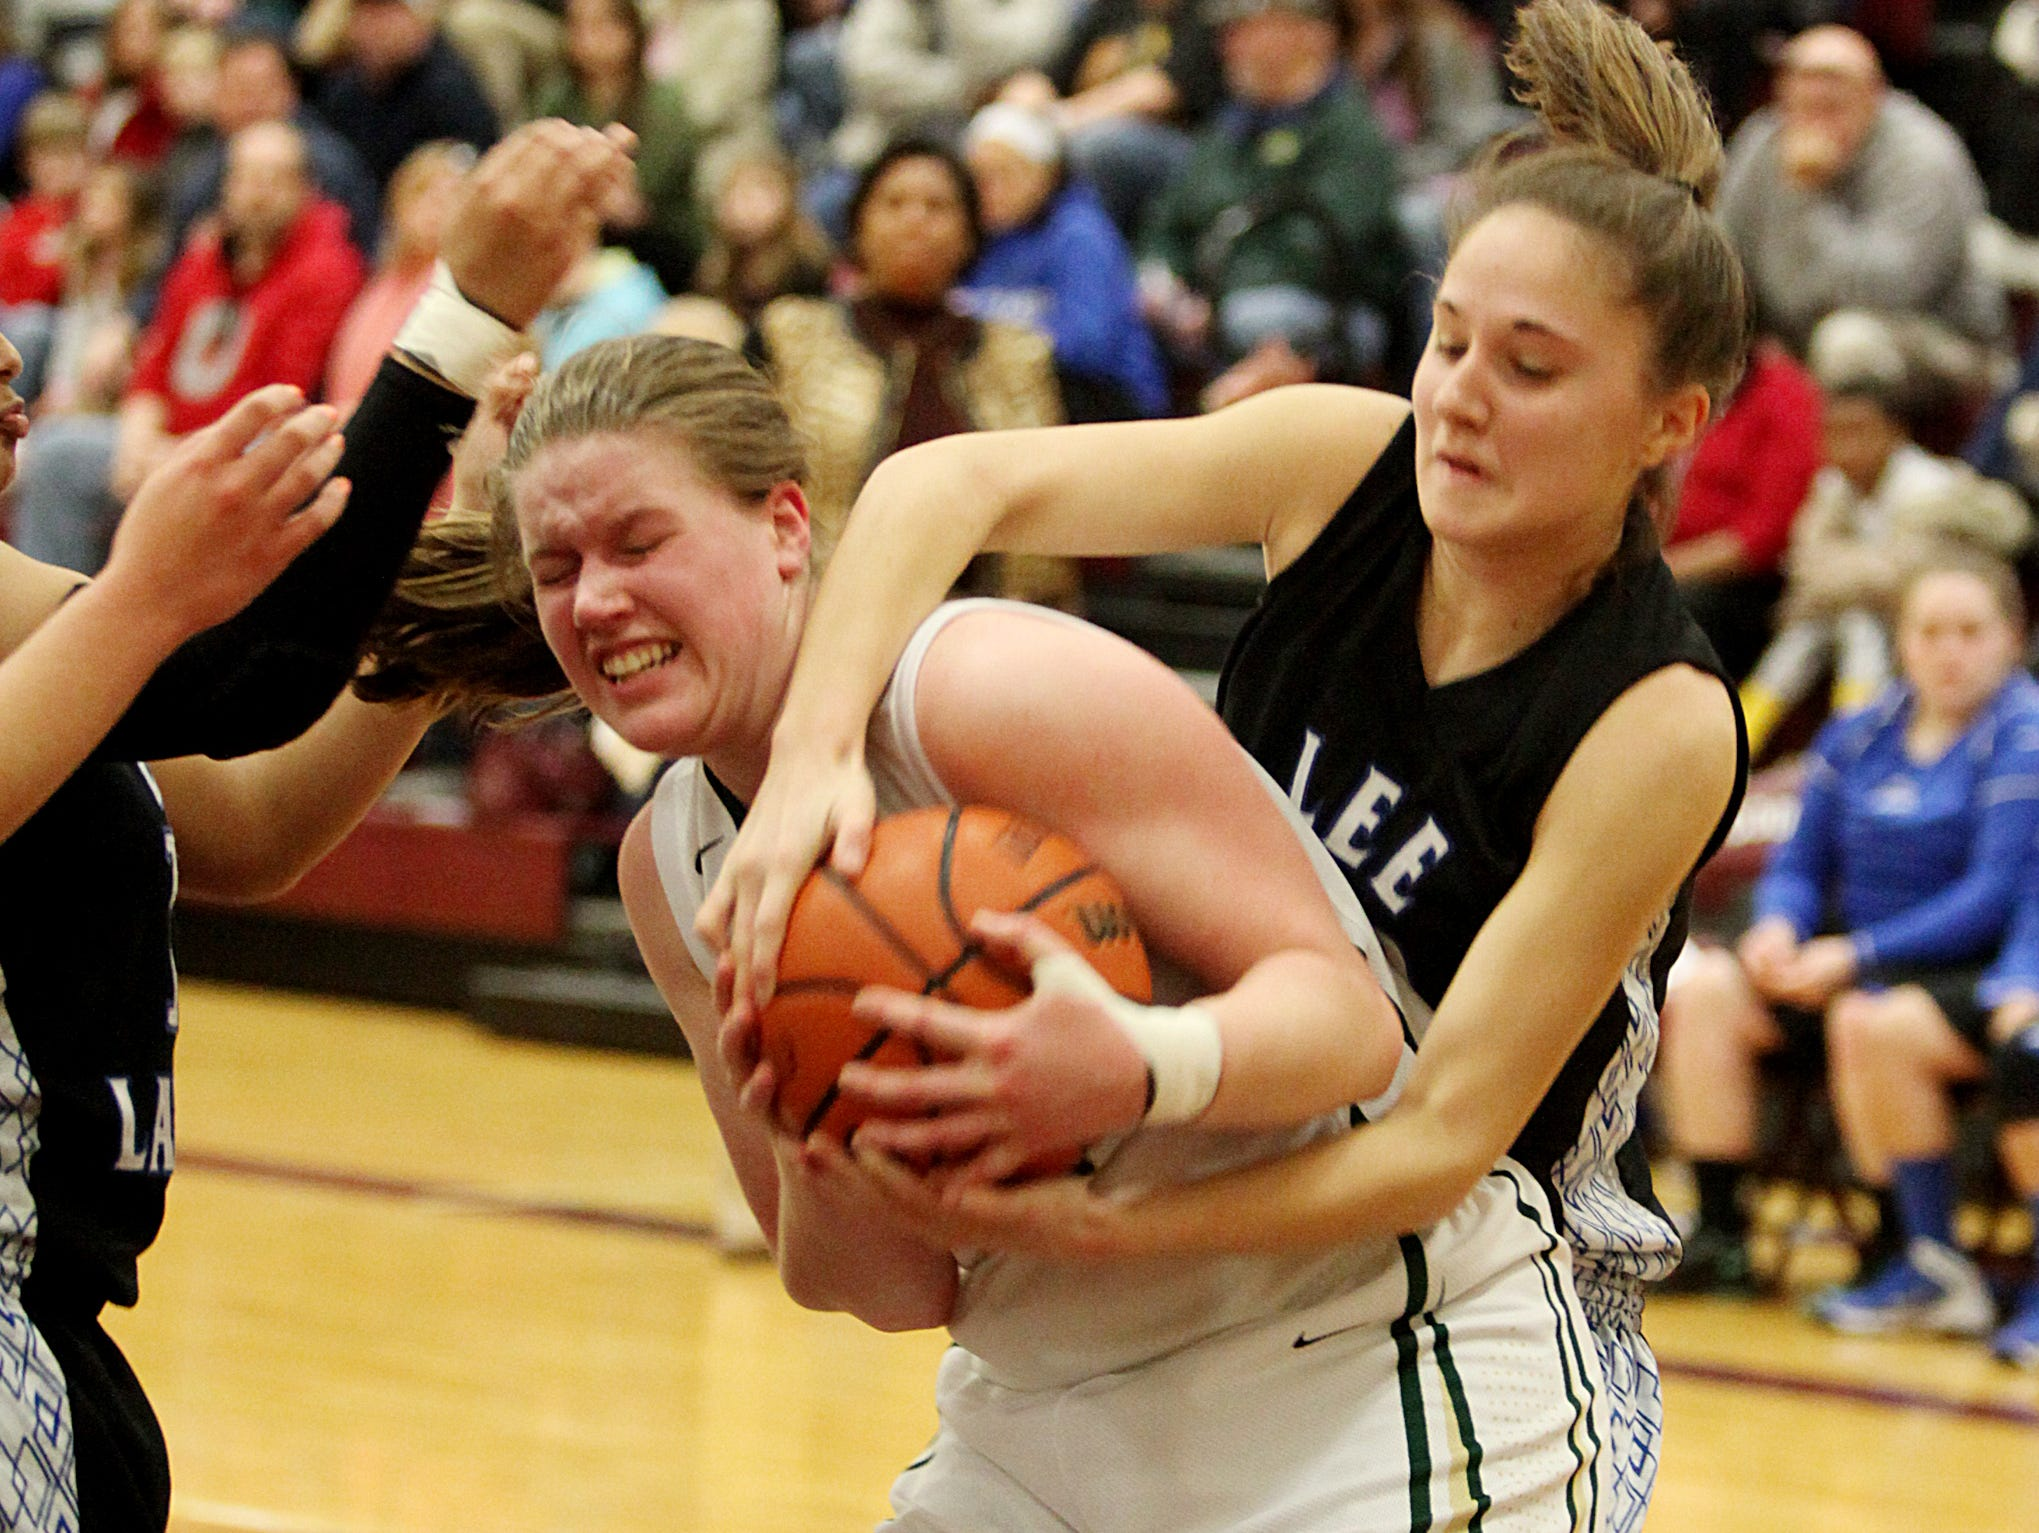 Wilson Memorial's Leara Shumate fights for the ball with Robert E. Lee's Jesse Bartley during their Group 2A East semifinal game at Stuarts Draft High School on Saturday.